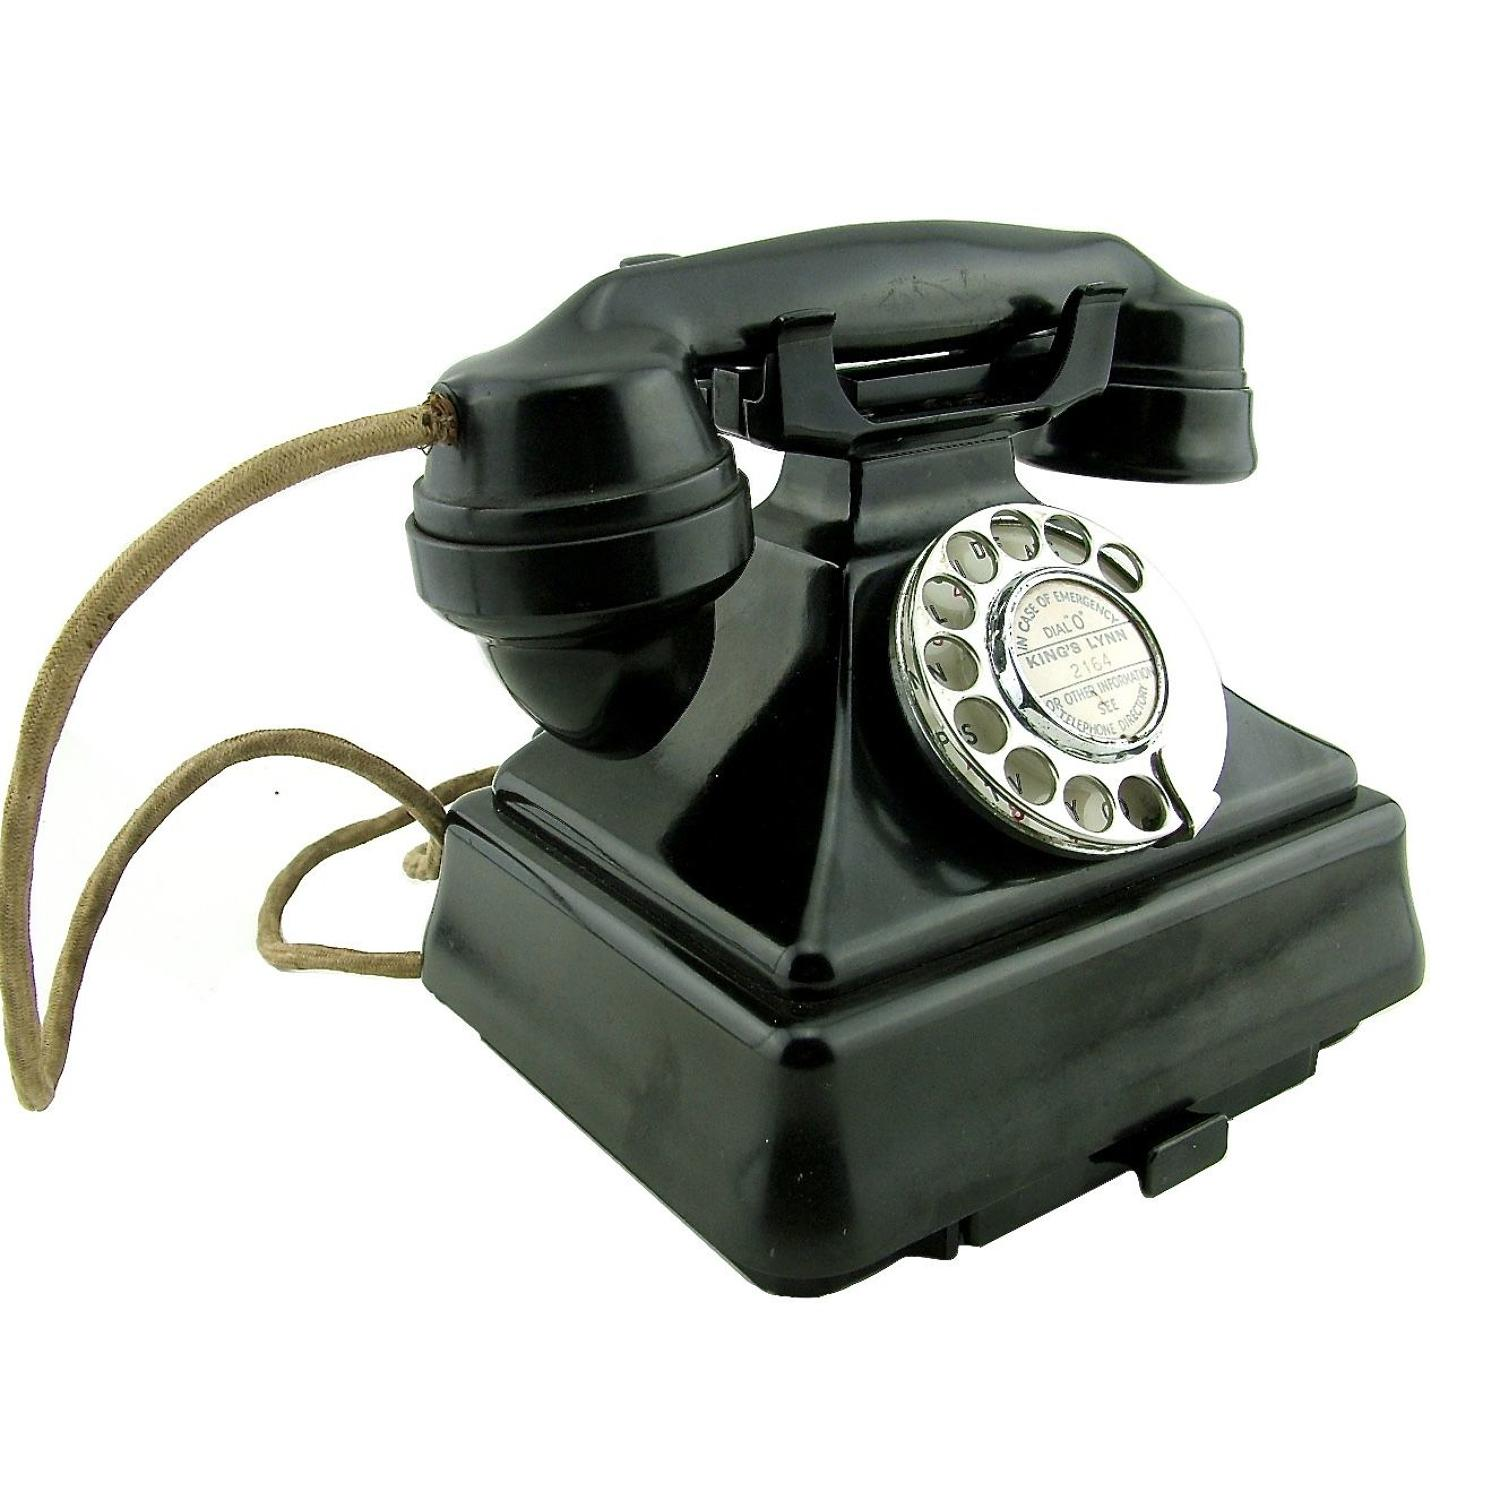 Original 200 series telephone